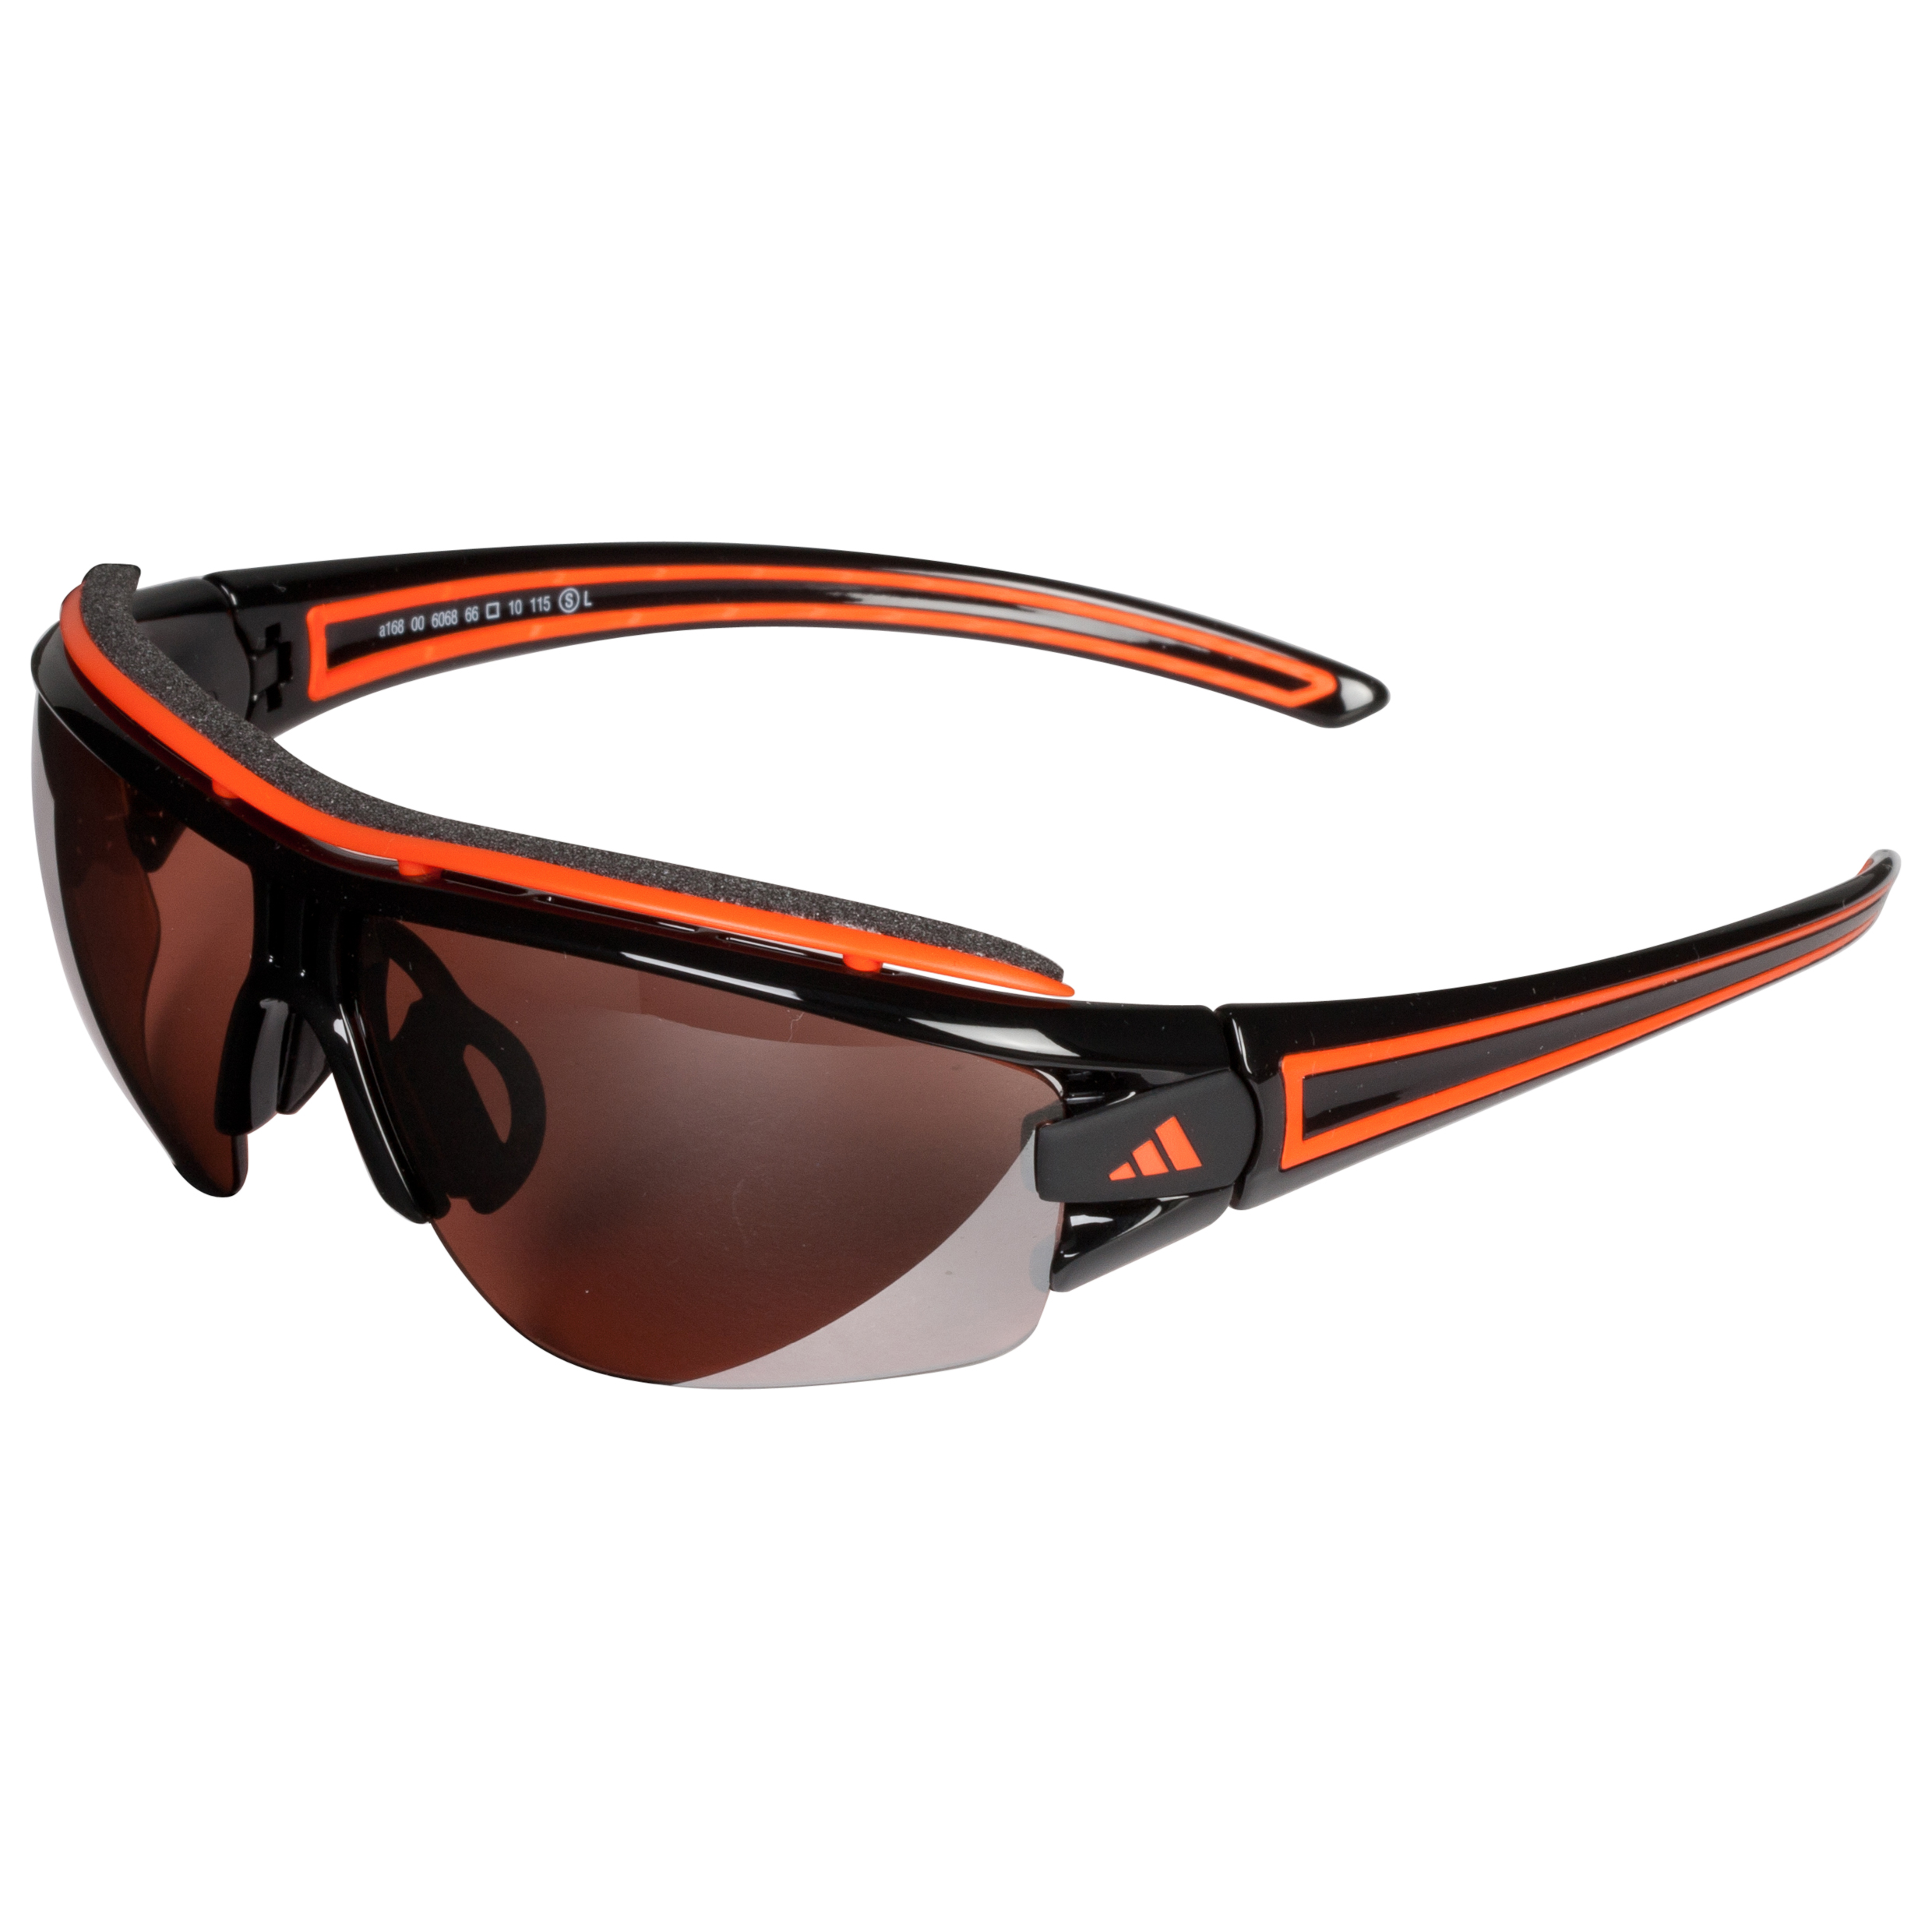 Adidas Evil Eye Halfrim Pro Sunglasses - Black/Orange - Small